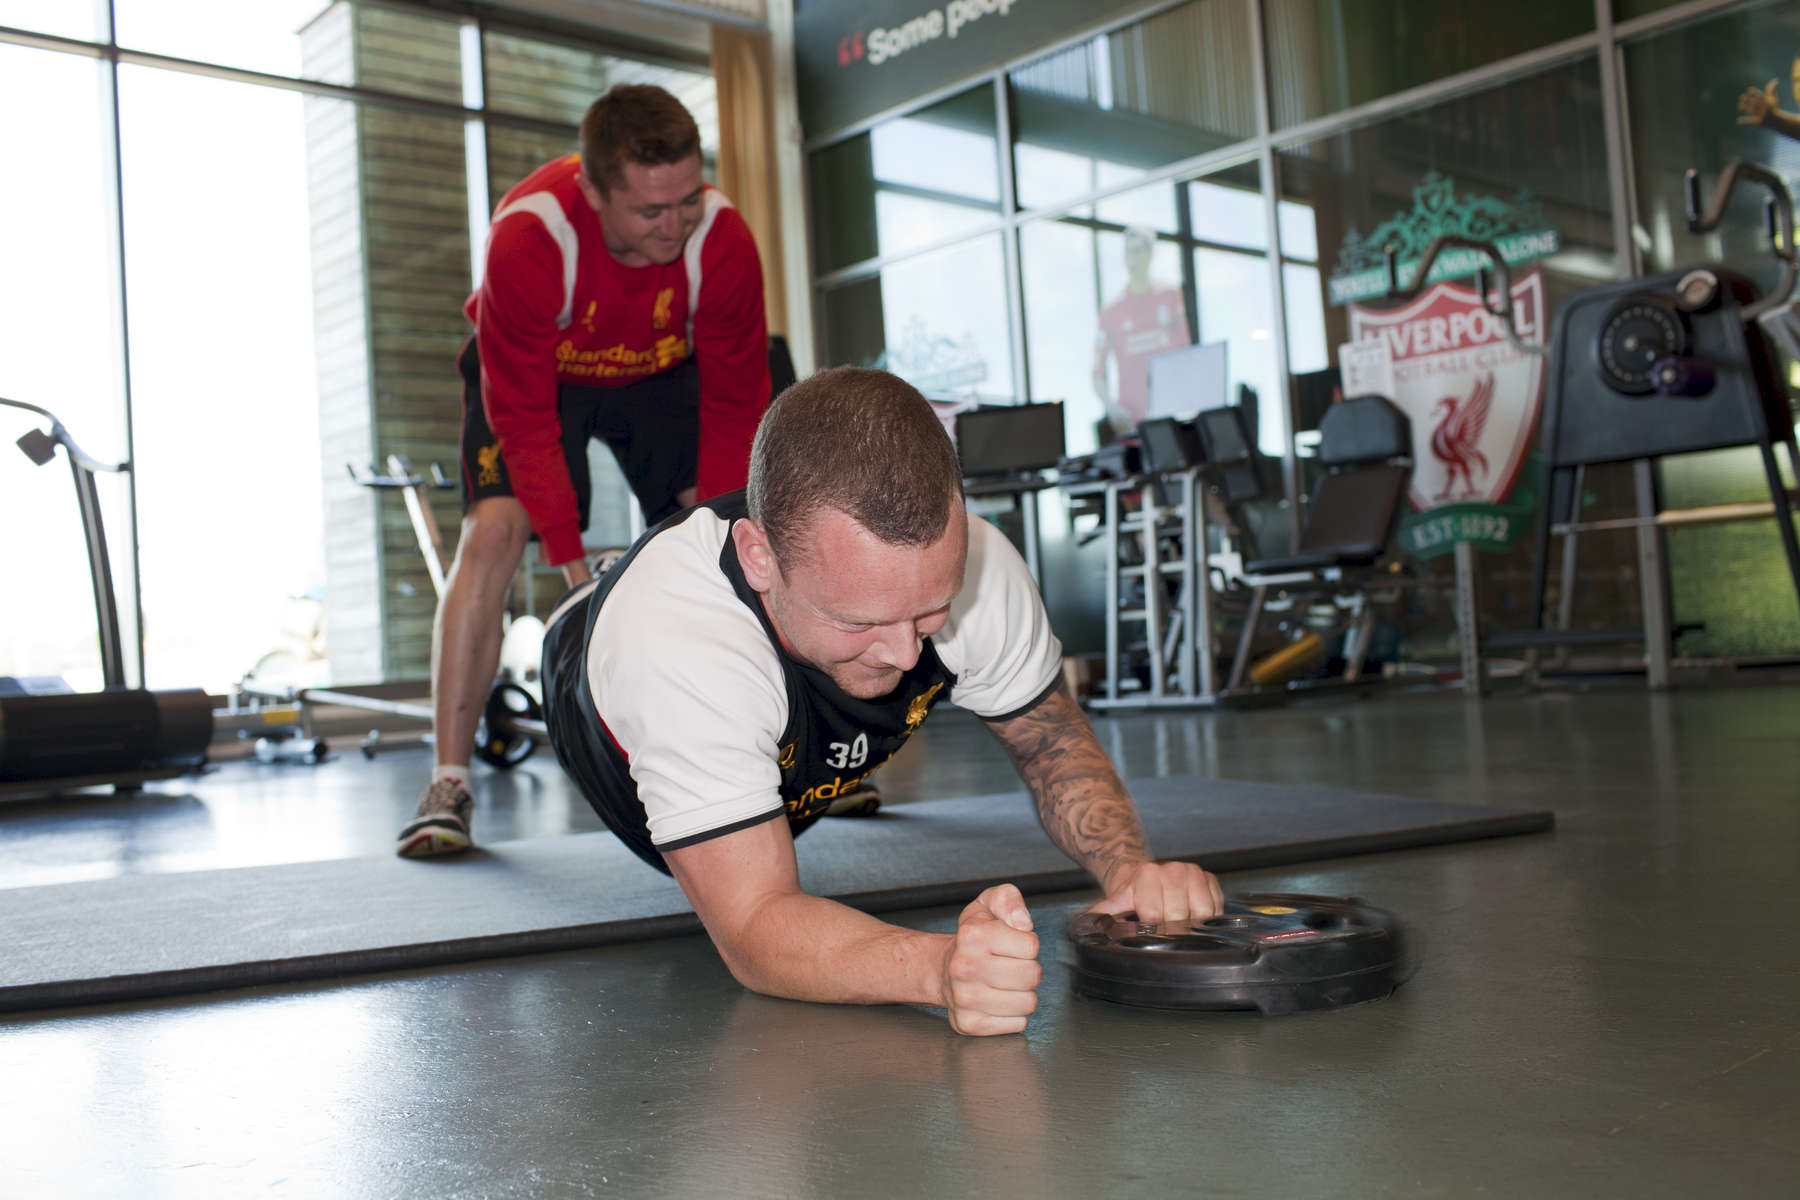 Liverpool FC defensive midfielder Jay Spearing receives a work out in the gym at Melwood.Melwood is the Liverpool FC training ground, located in the West Derby area of Liverpool. It is seperate from the Liverpool Academy, which is based in Kirkby.Melwood was redeveloped in the early 2000′s with large input from then-manager Gerard Houllier and now features some of the best facilities in Europe. It has been the club's training ground since the fifties and was previously transformed into a top class facility by Bill Shankly.Facilities include sythetic pitches, rehabilitation rooms, press and meeting rooms, gymnasium, swimming pool, restaurant and recreational facilities.